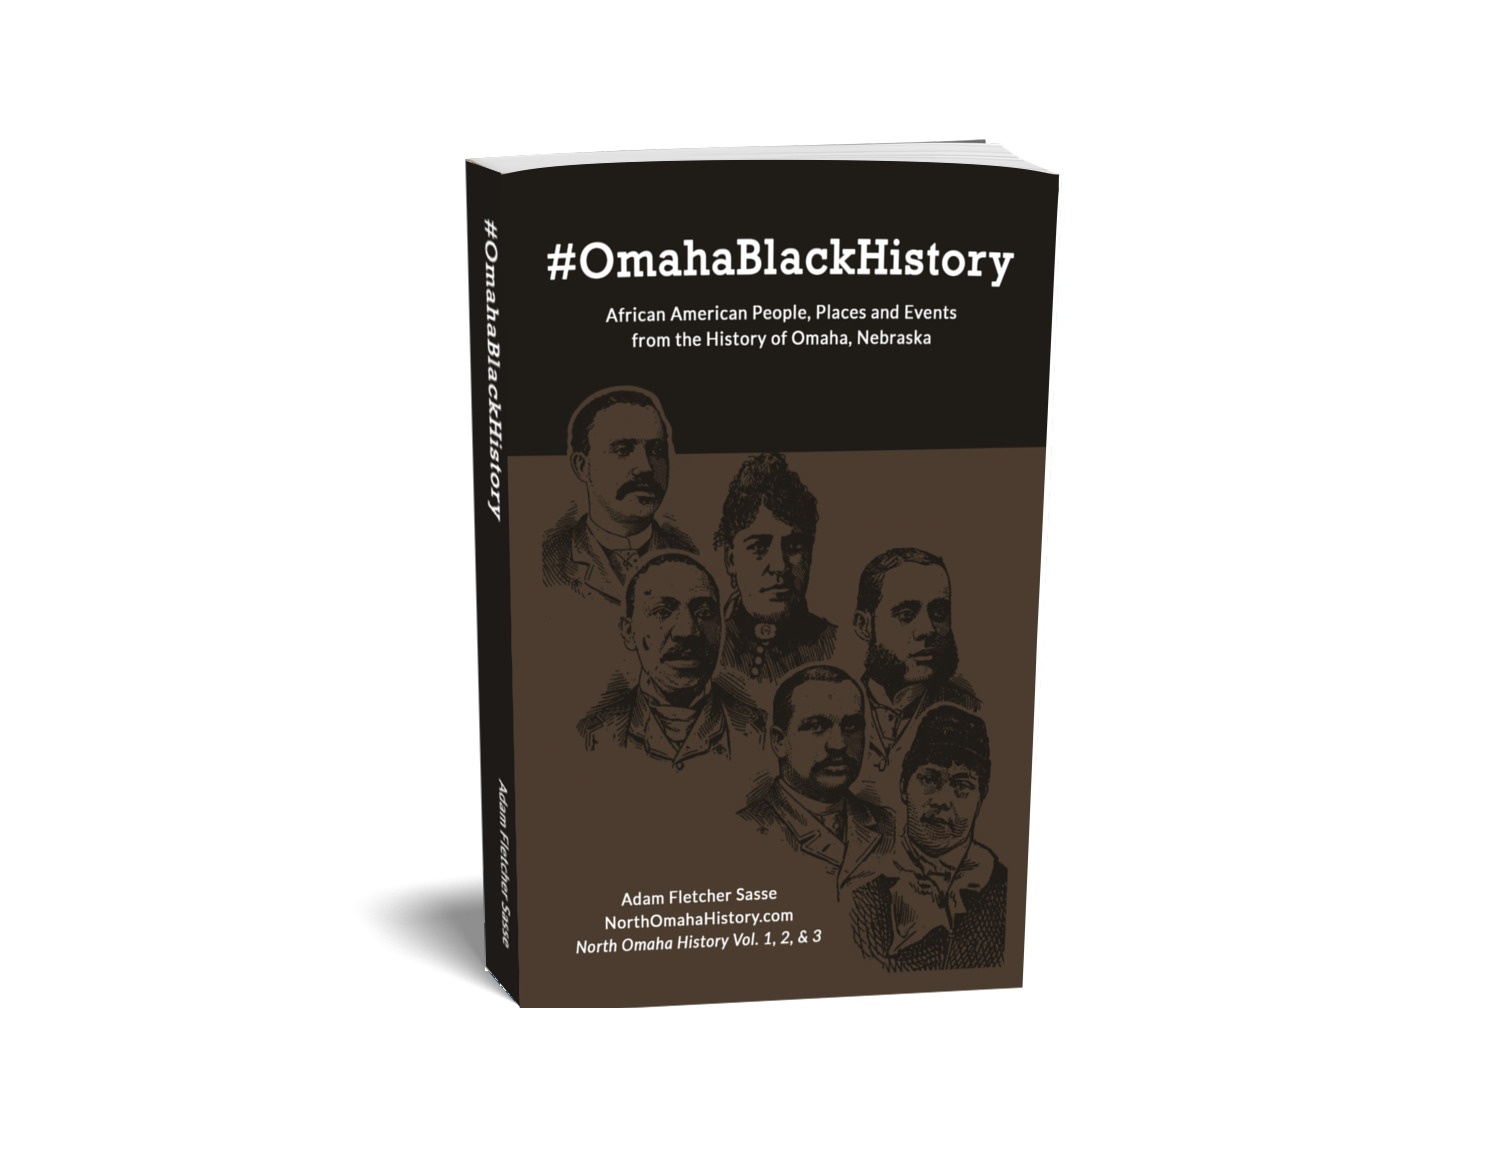 #OmahaBlackHistory: African American People, Places and Events from the History of Omaha, Nebraska by Adam Fletcher Sasse of NorthOmahaHistory.com